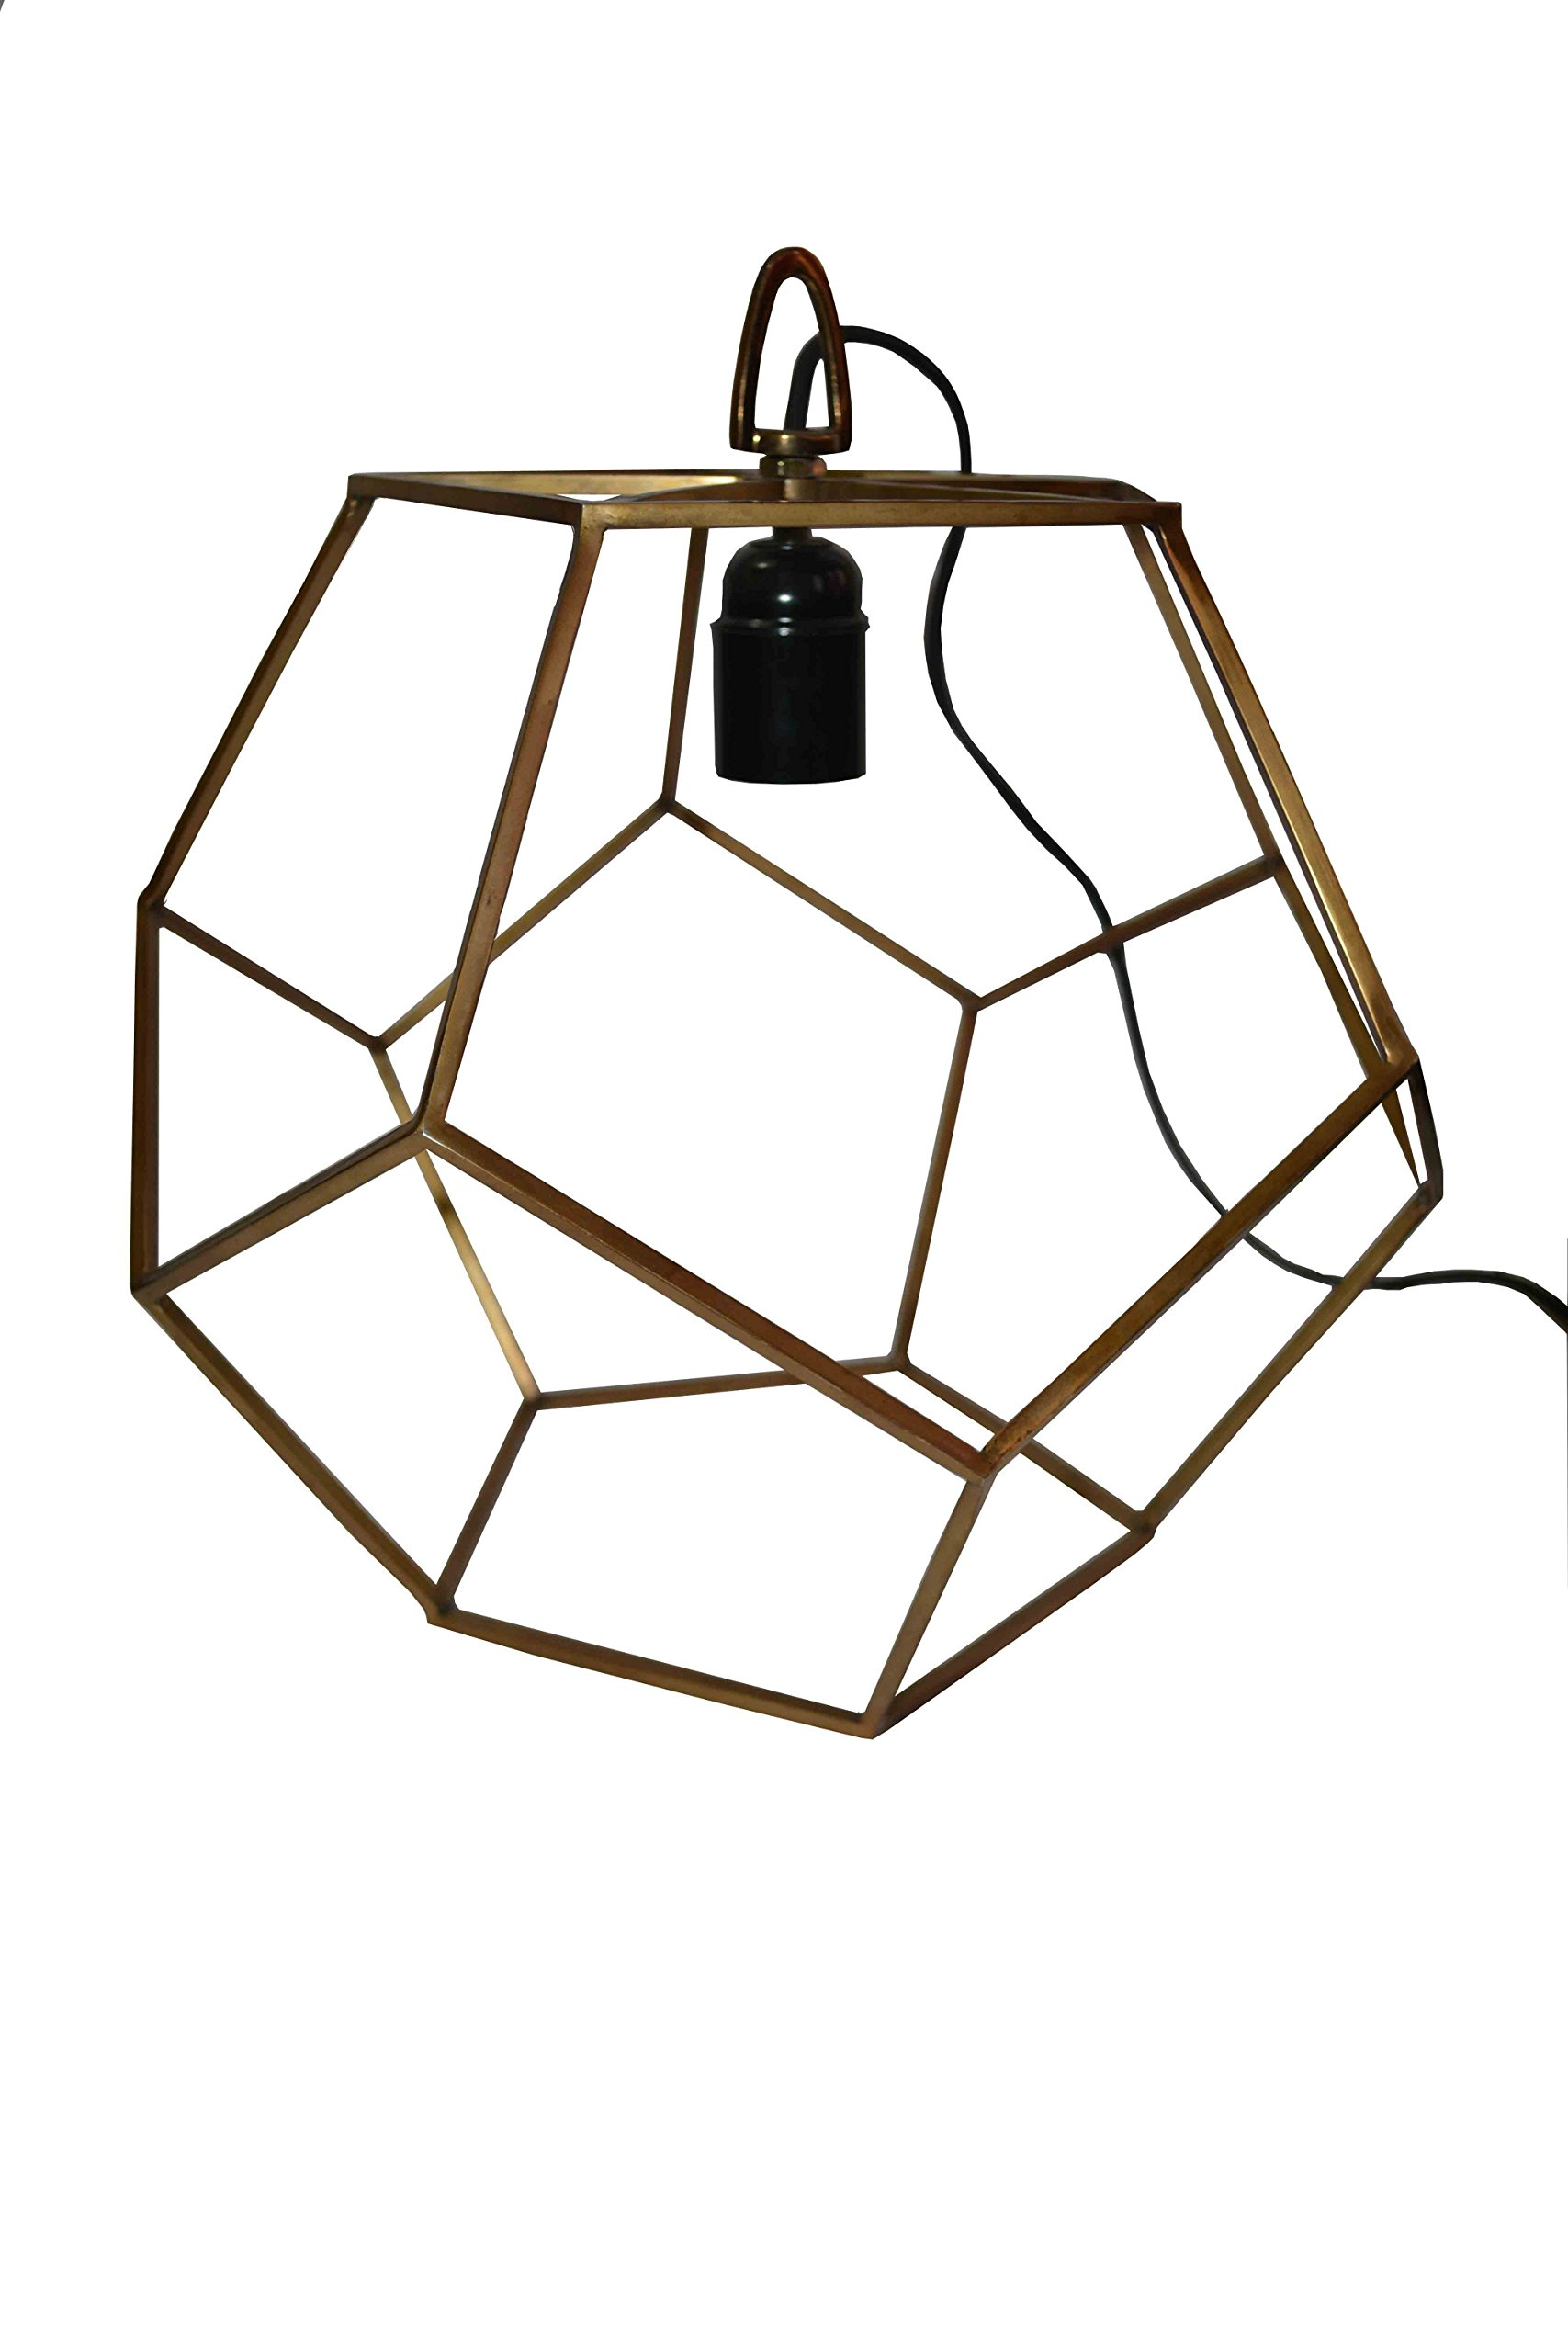 Designer Industrial Metal Cage Lamp Wrought Iron Shade Modern Hanging Pendant Light